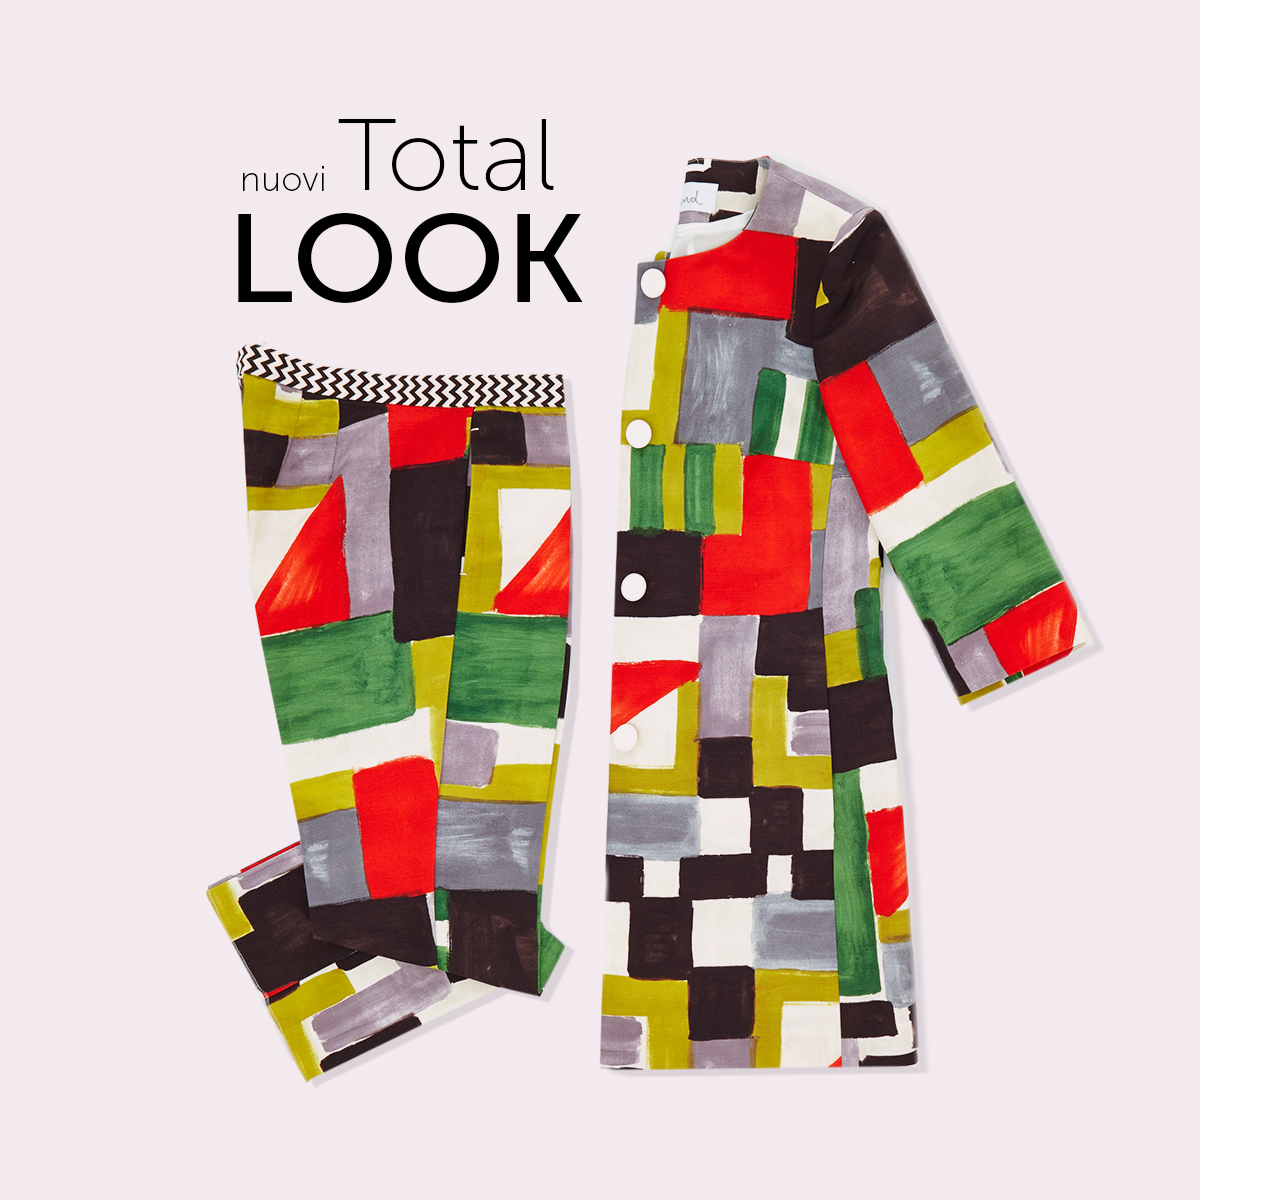 Total-Look-EditorialPage.jpg